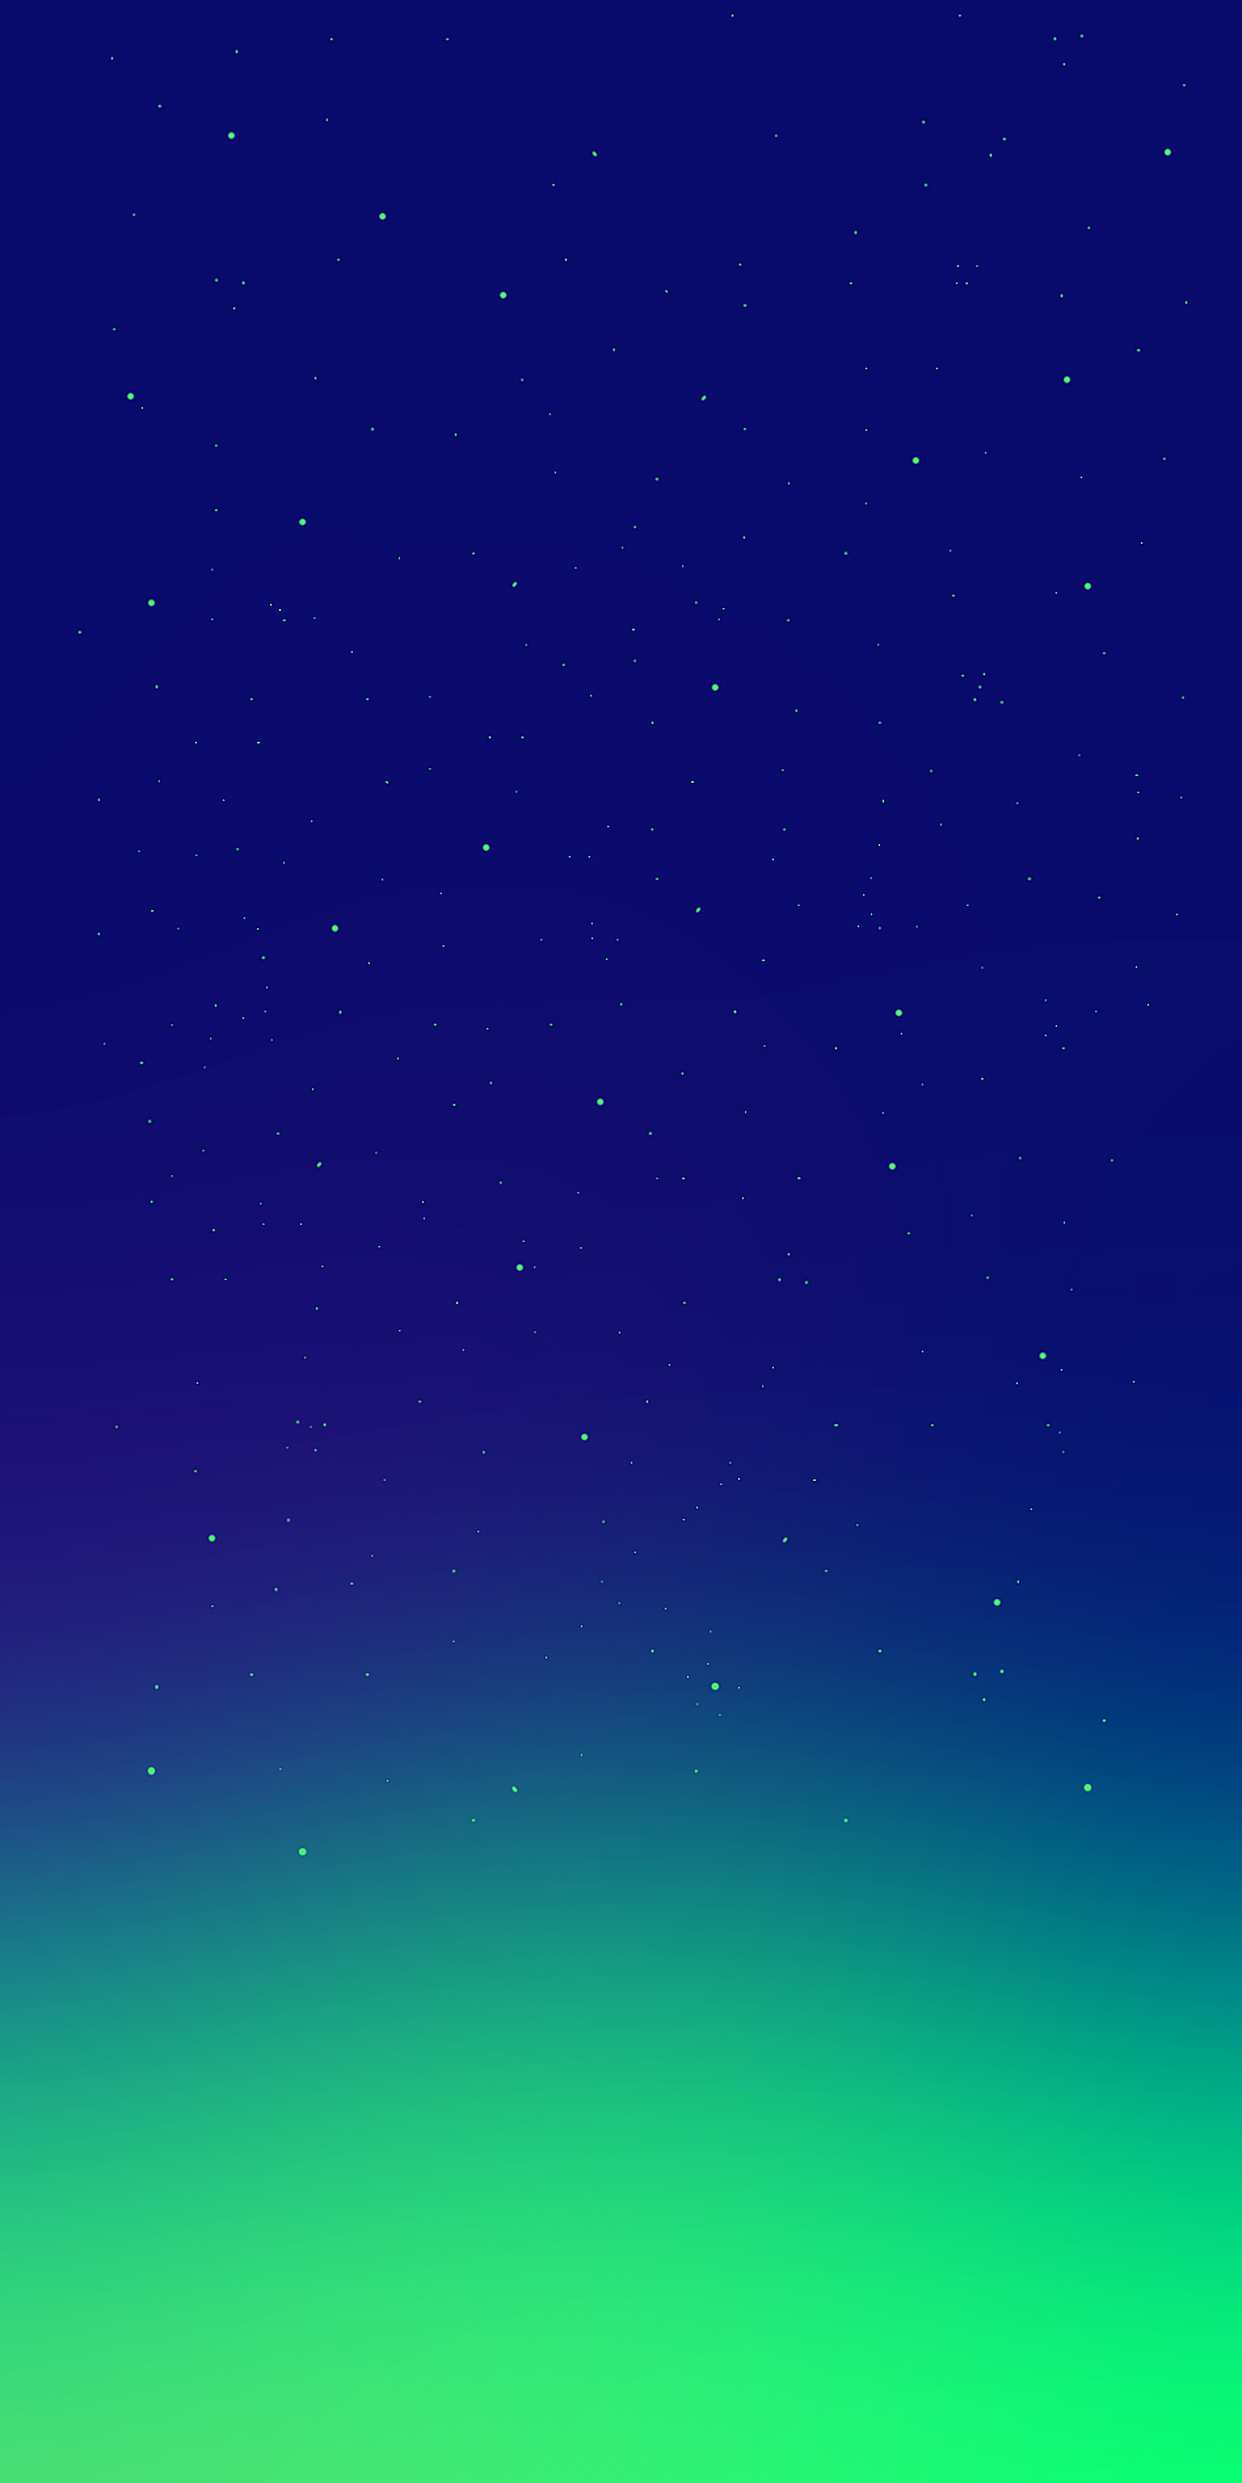 Minimalist Iphone Wallpaper Quotes Universe For Iphone Xs Max Iphone Xr Iphone Wallpapers